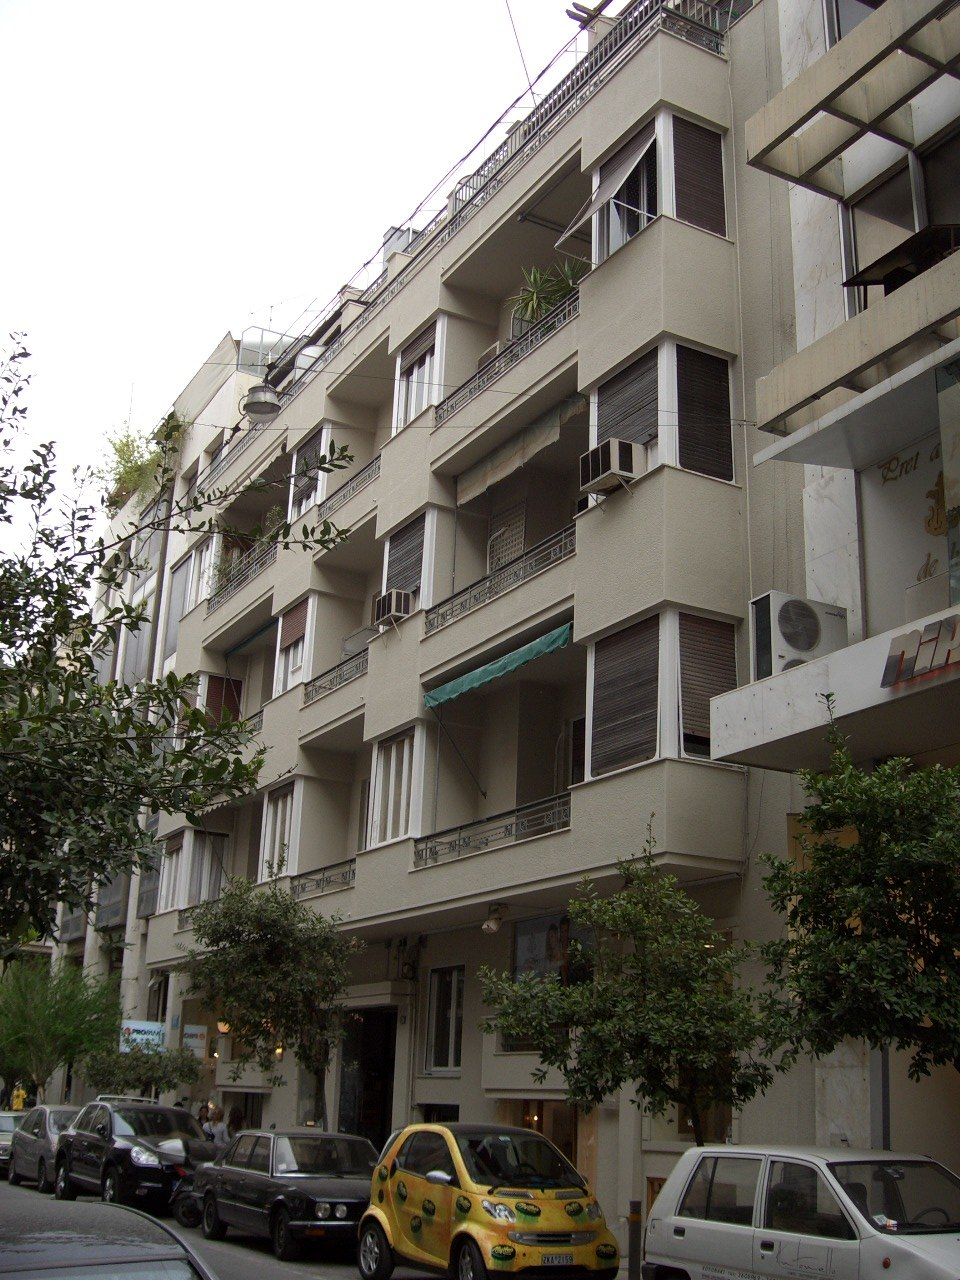 Athens earlymodernism01